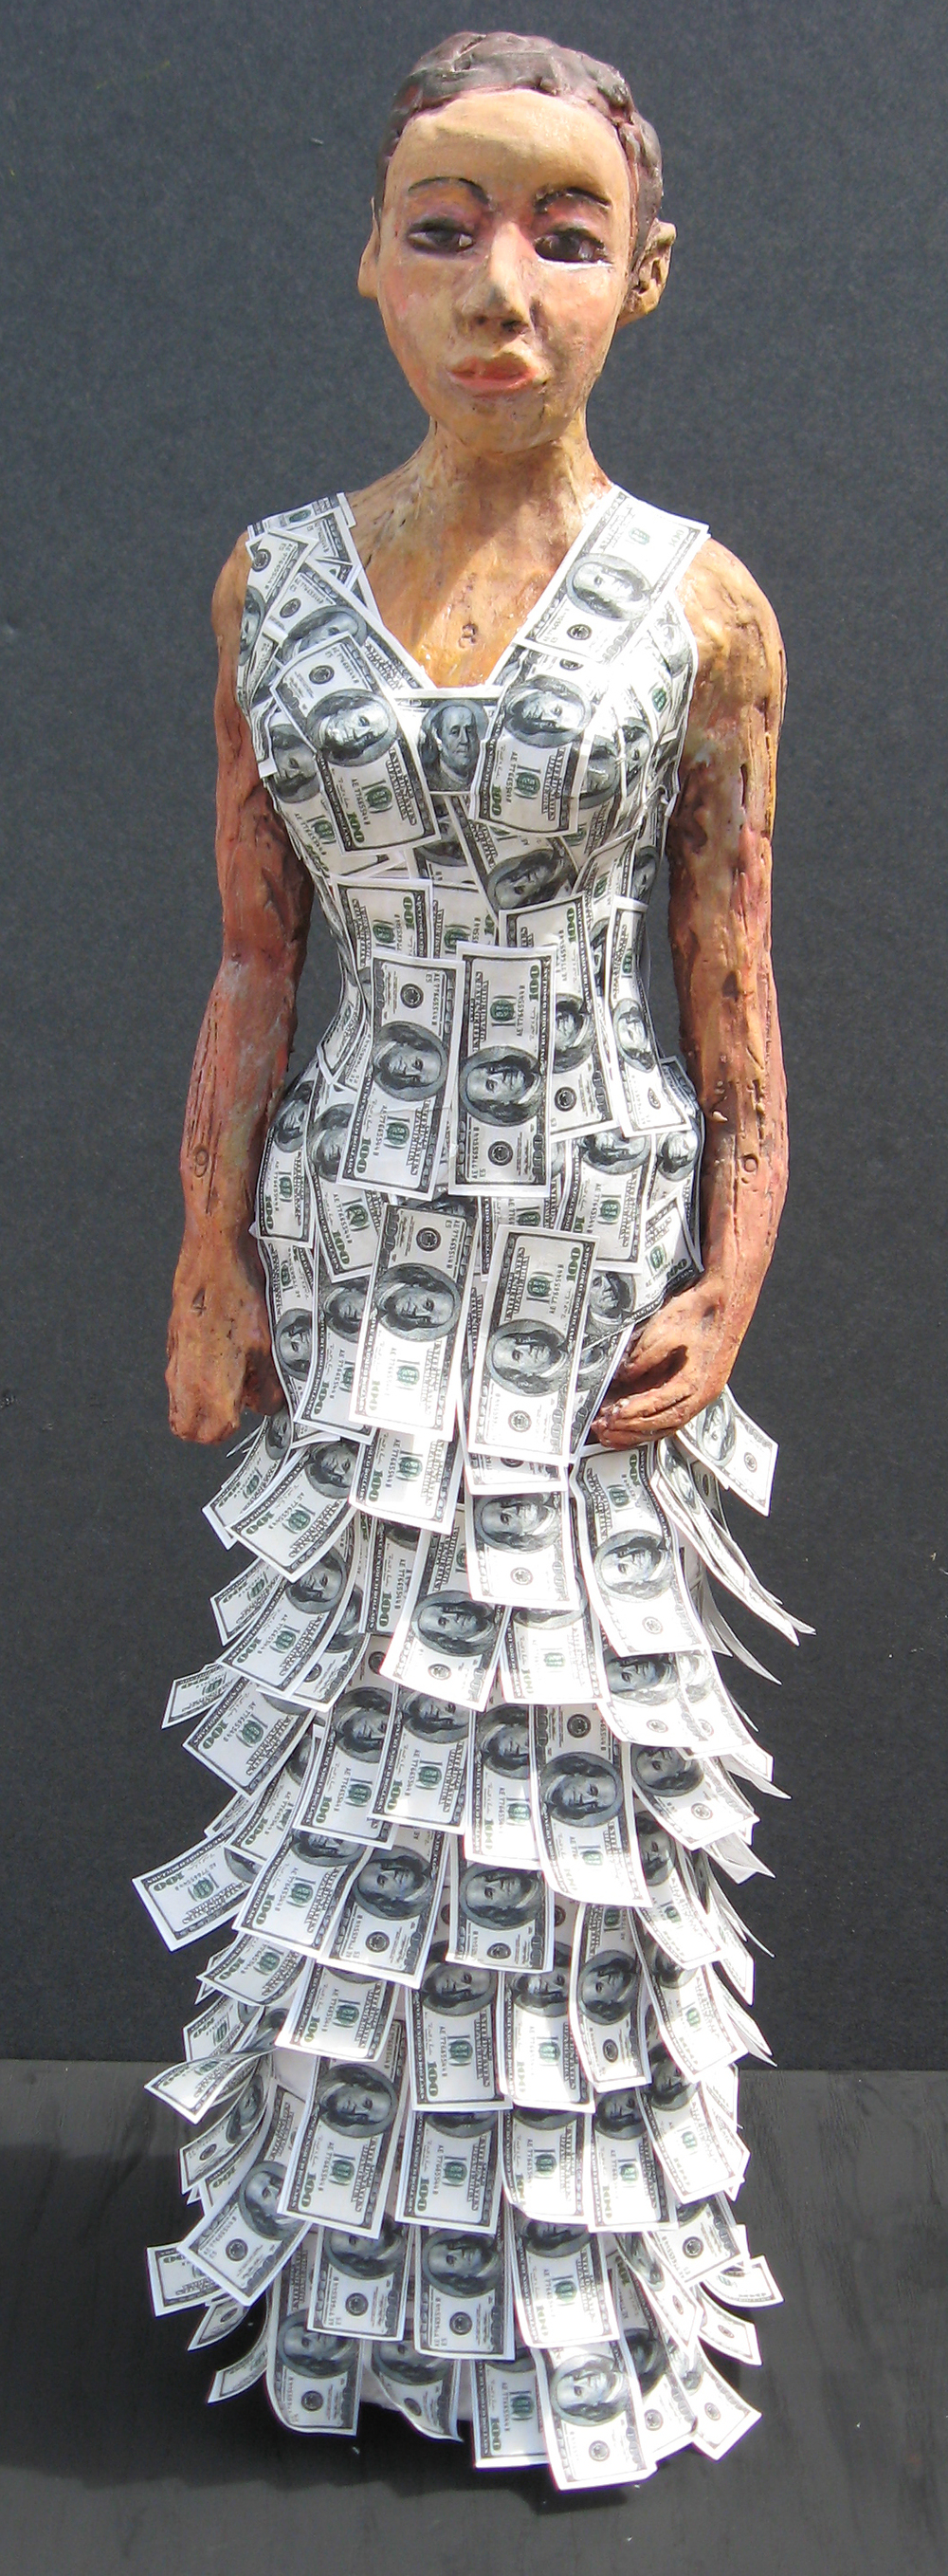 Deficit Dress